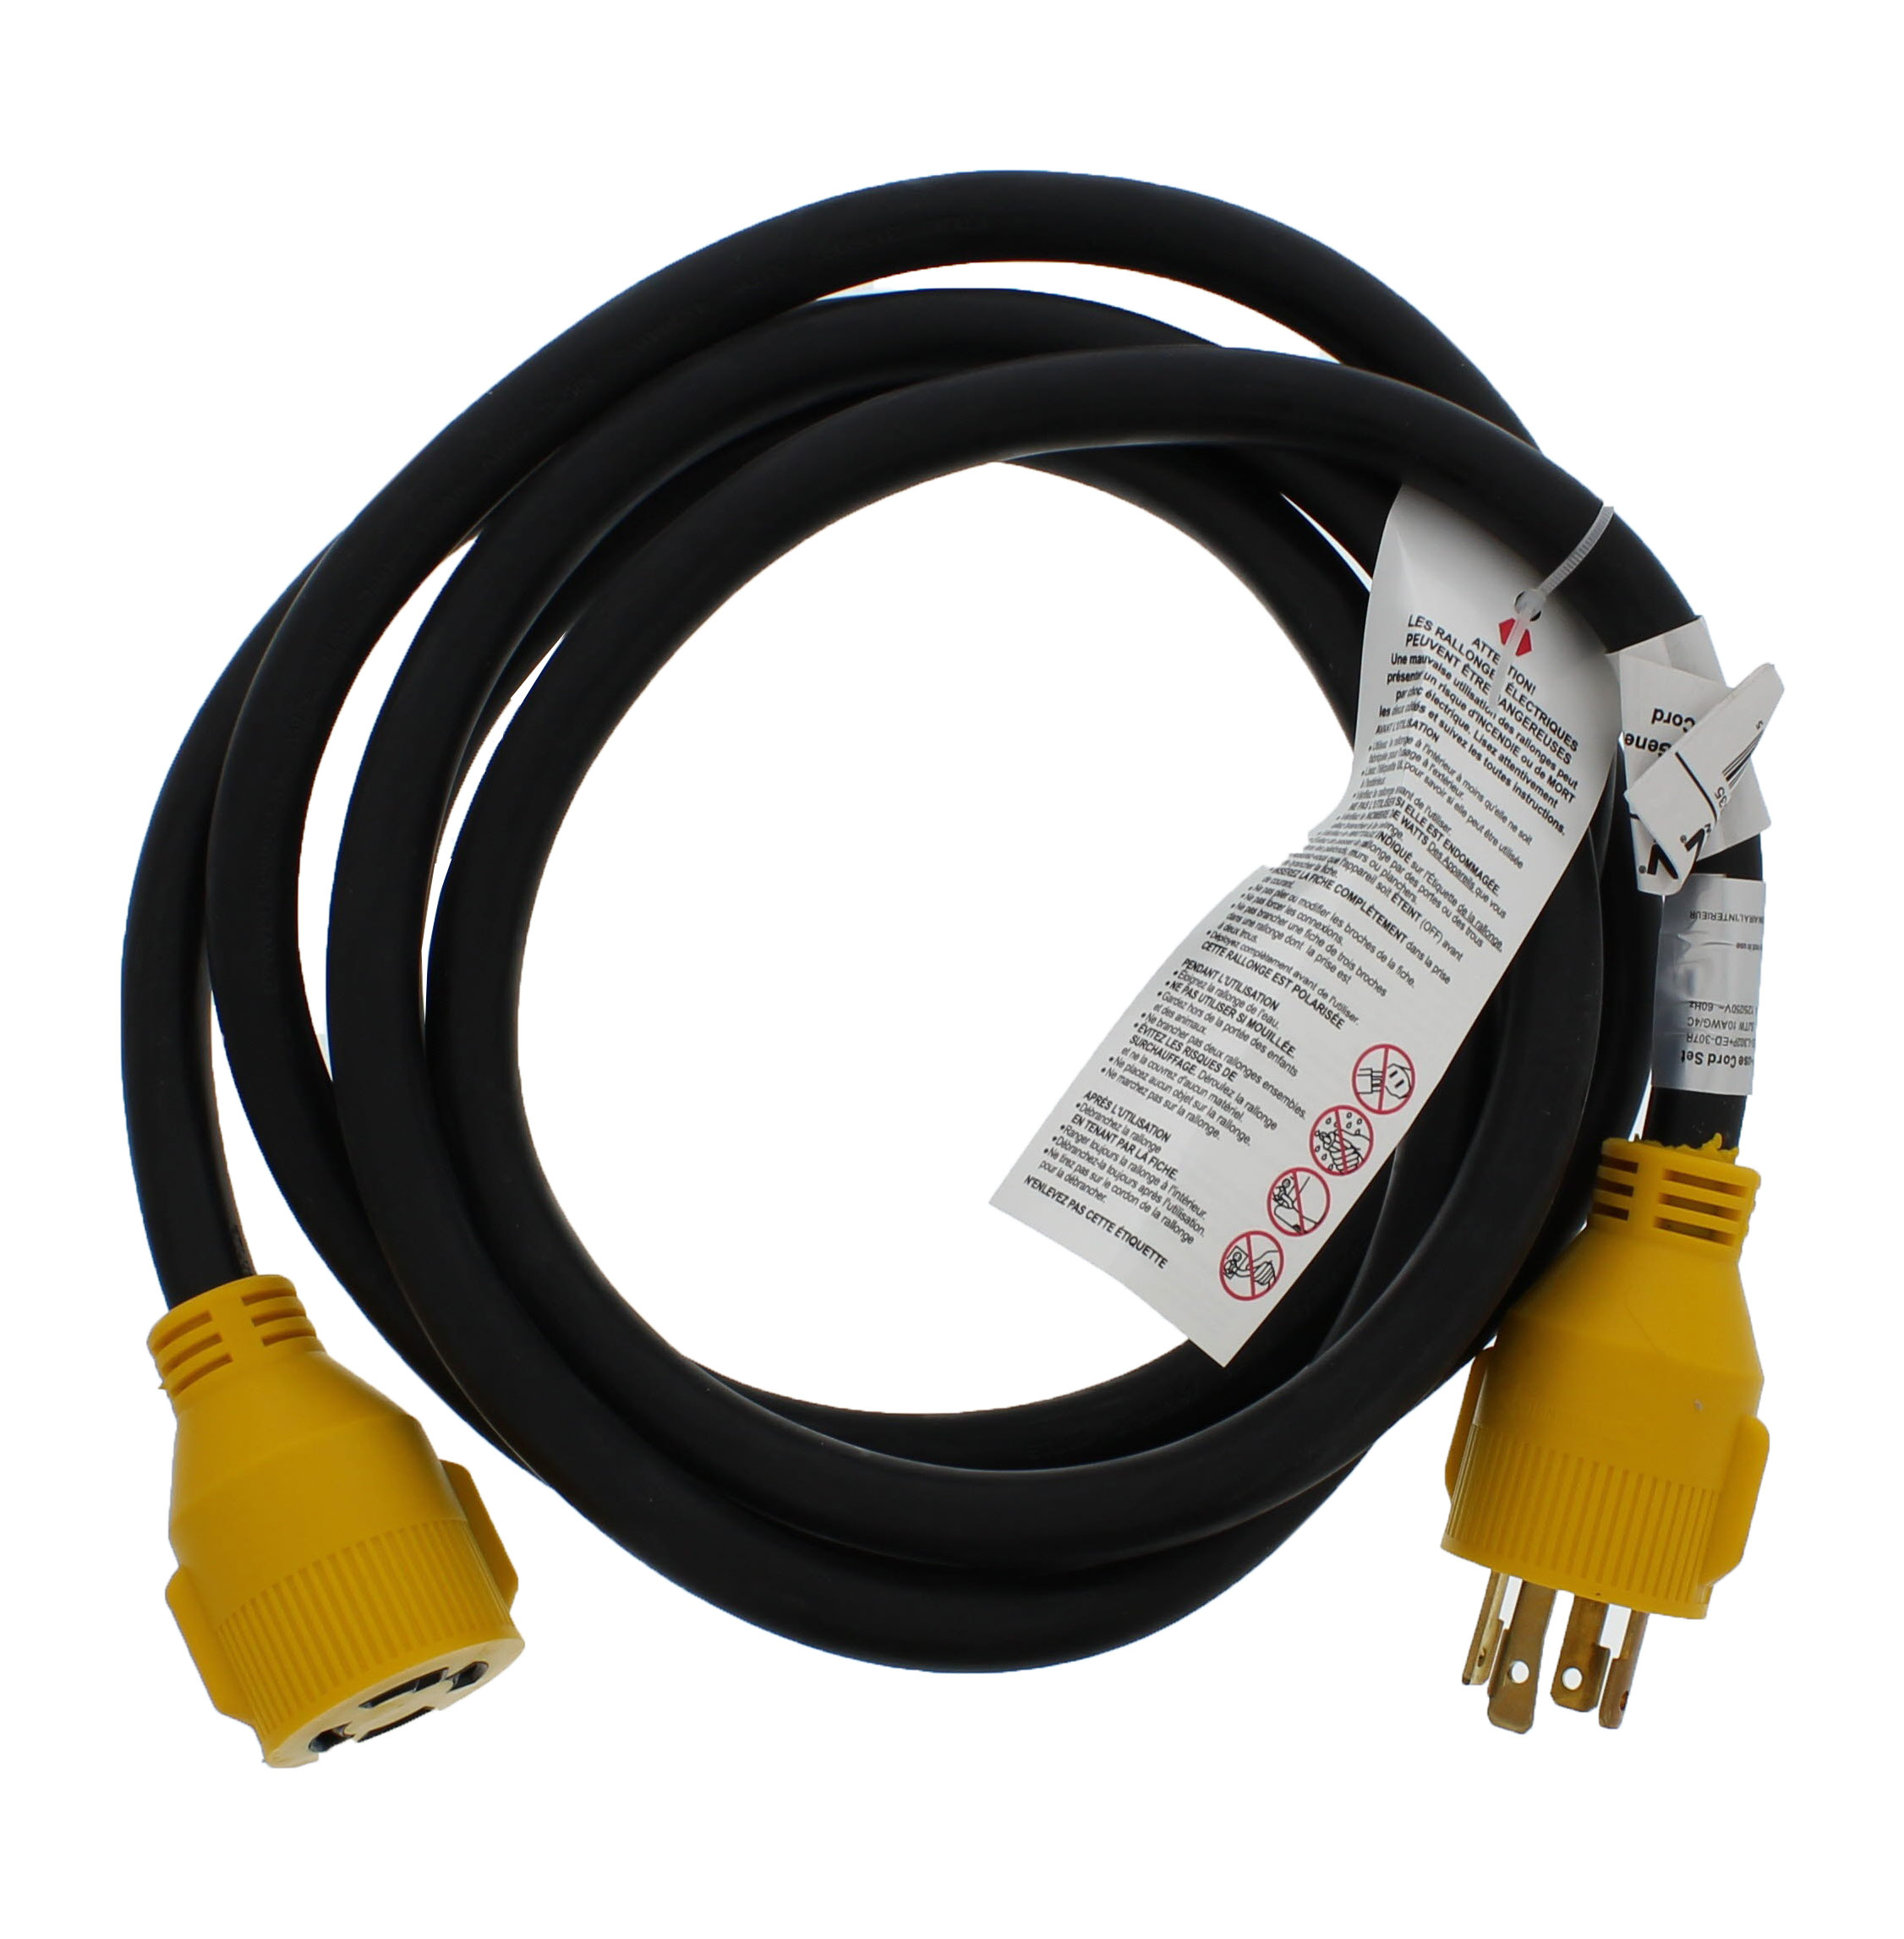 3 Prong Generator Cord : Abn amp volt prong generator extension cords